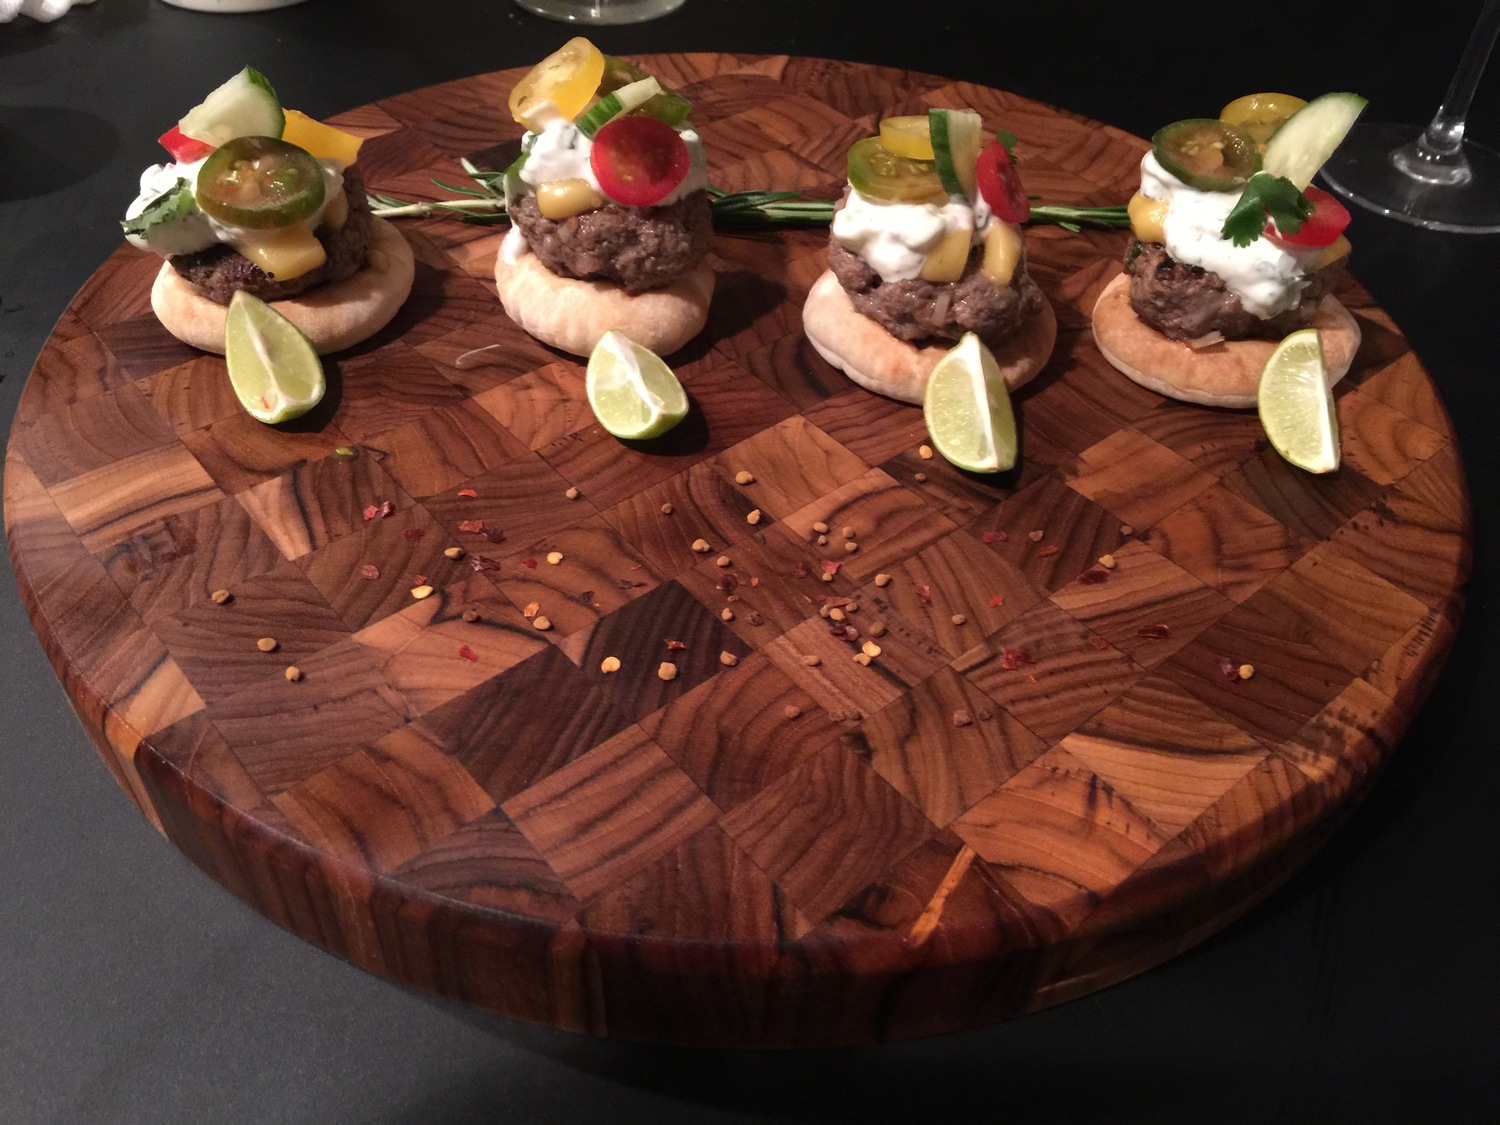 Catering At Chefs Table - The chef's table catering